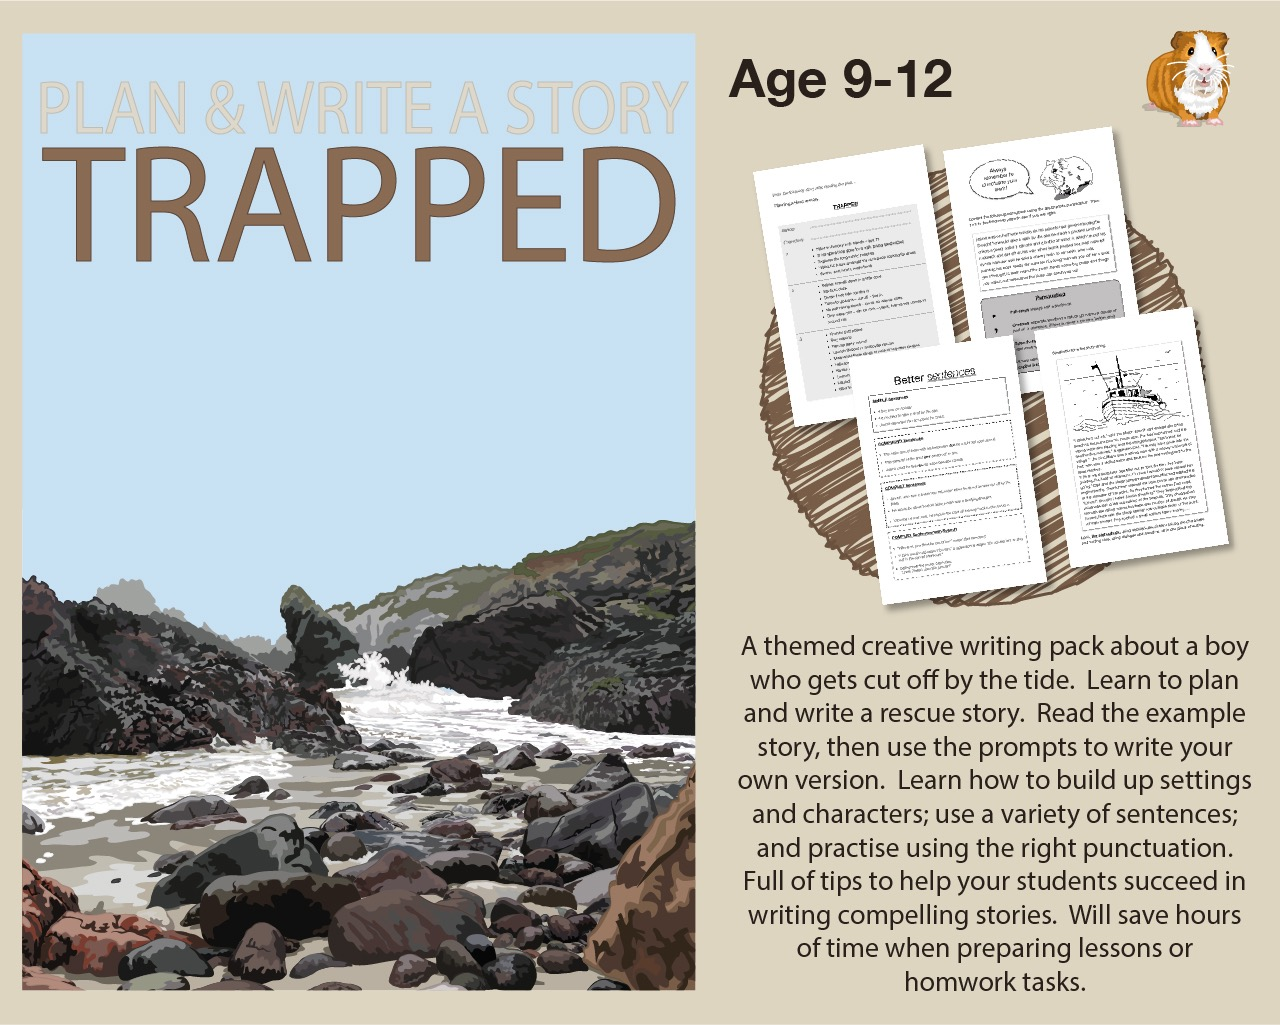 Plan And Write A Story Called 'Trapped' (9-14 years)